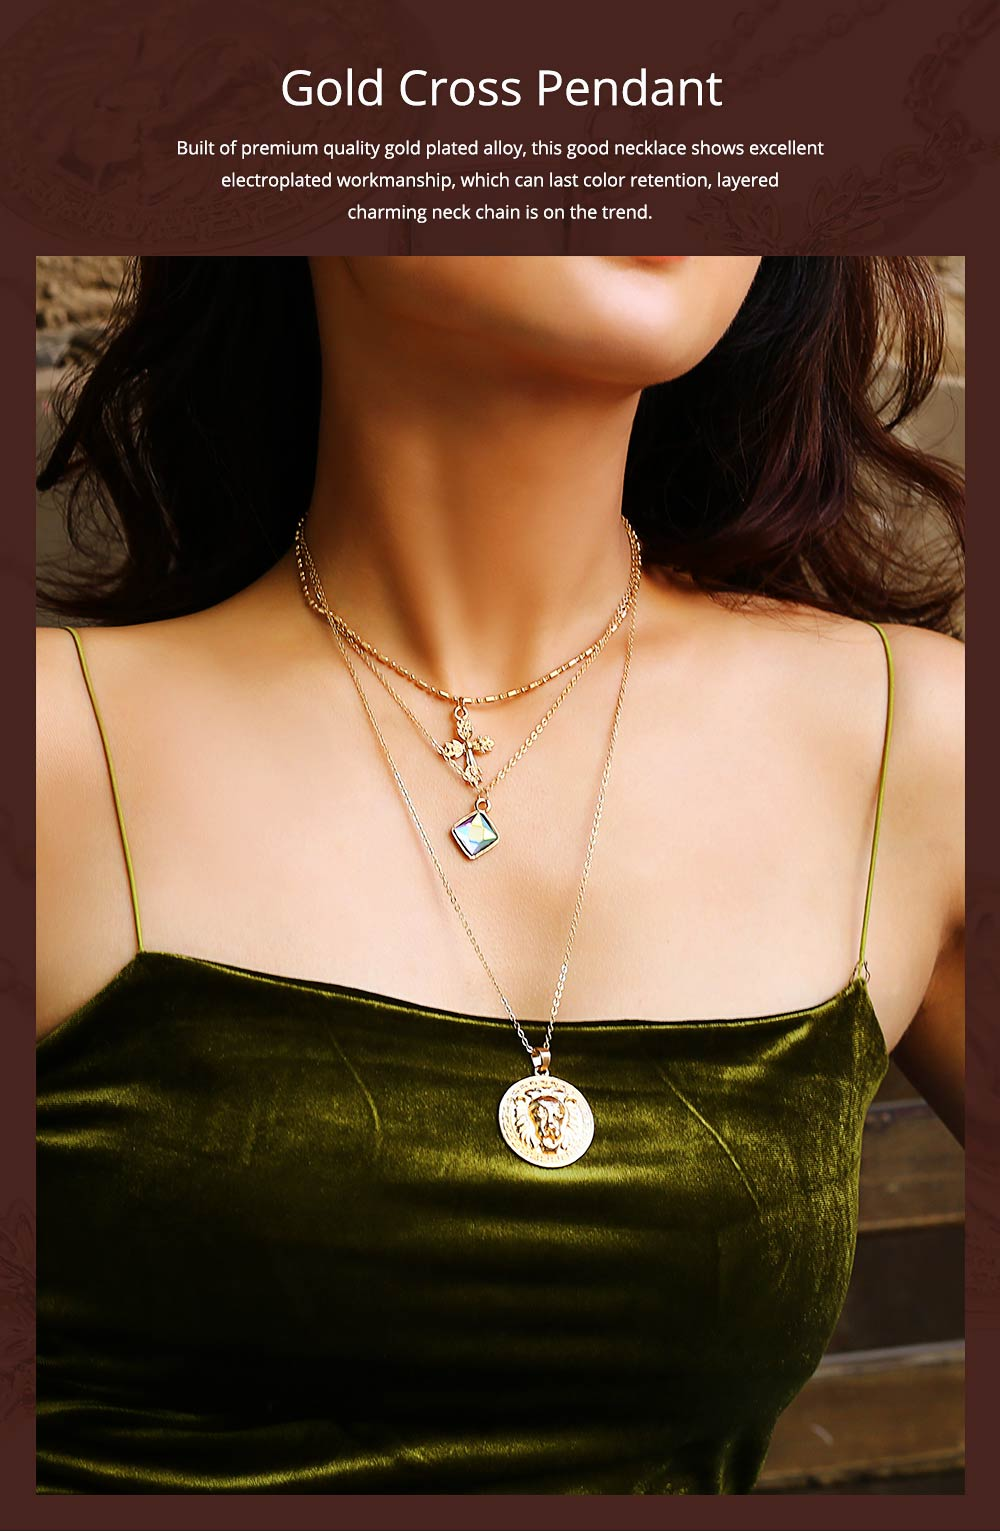 Gold Cross Pendant Necklace, Fashionable Gold Plated Choker Vintage Layered Necklace for Women 2019 0